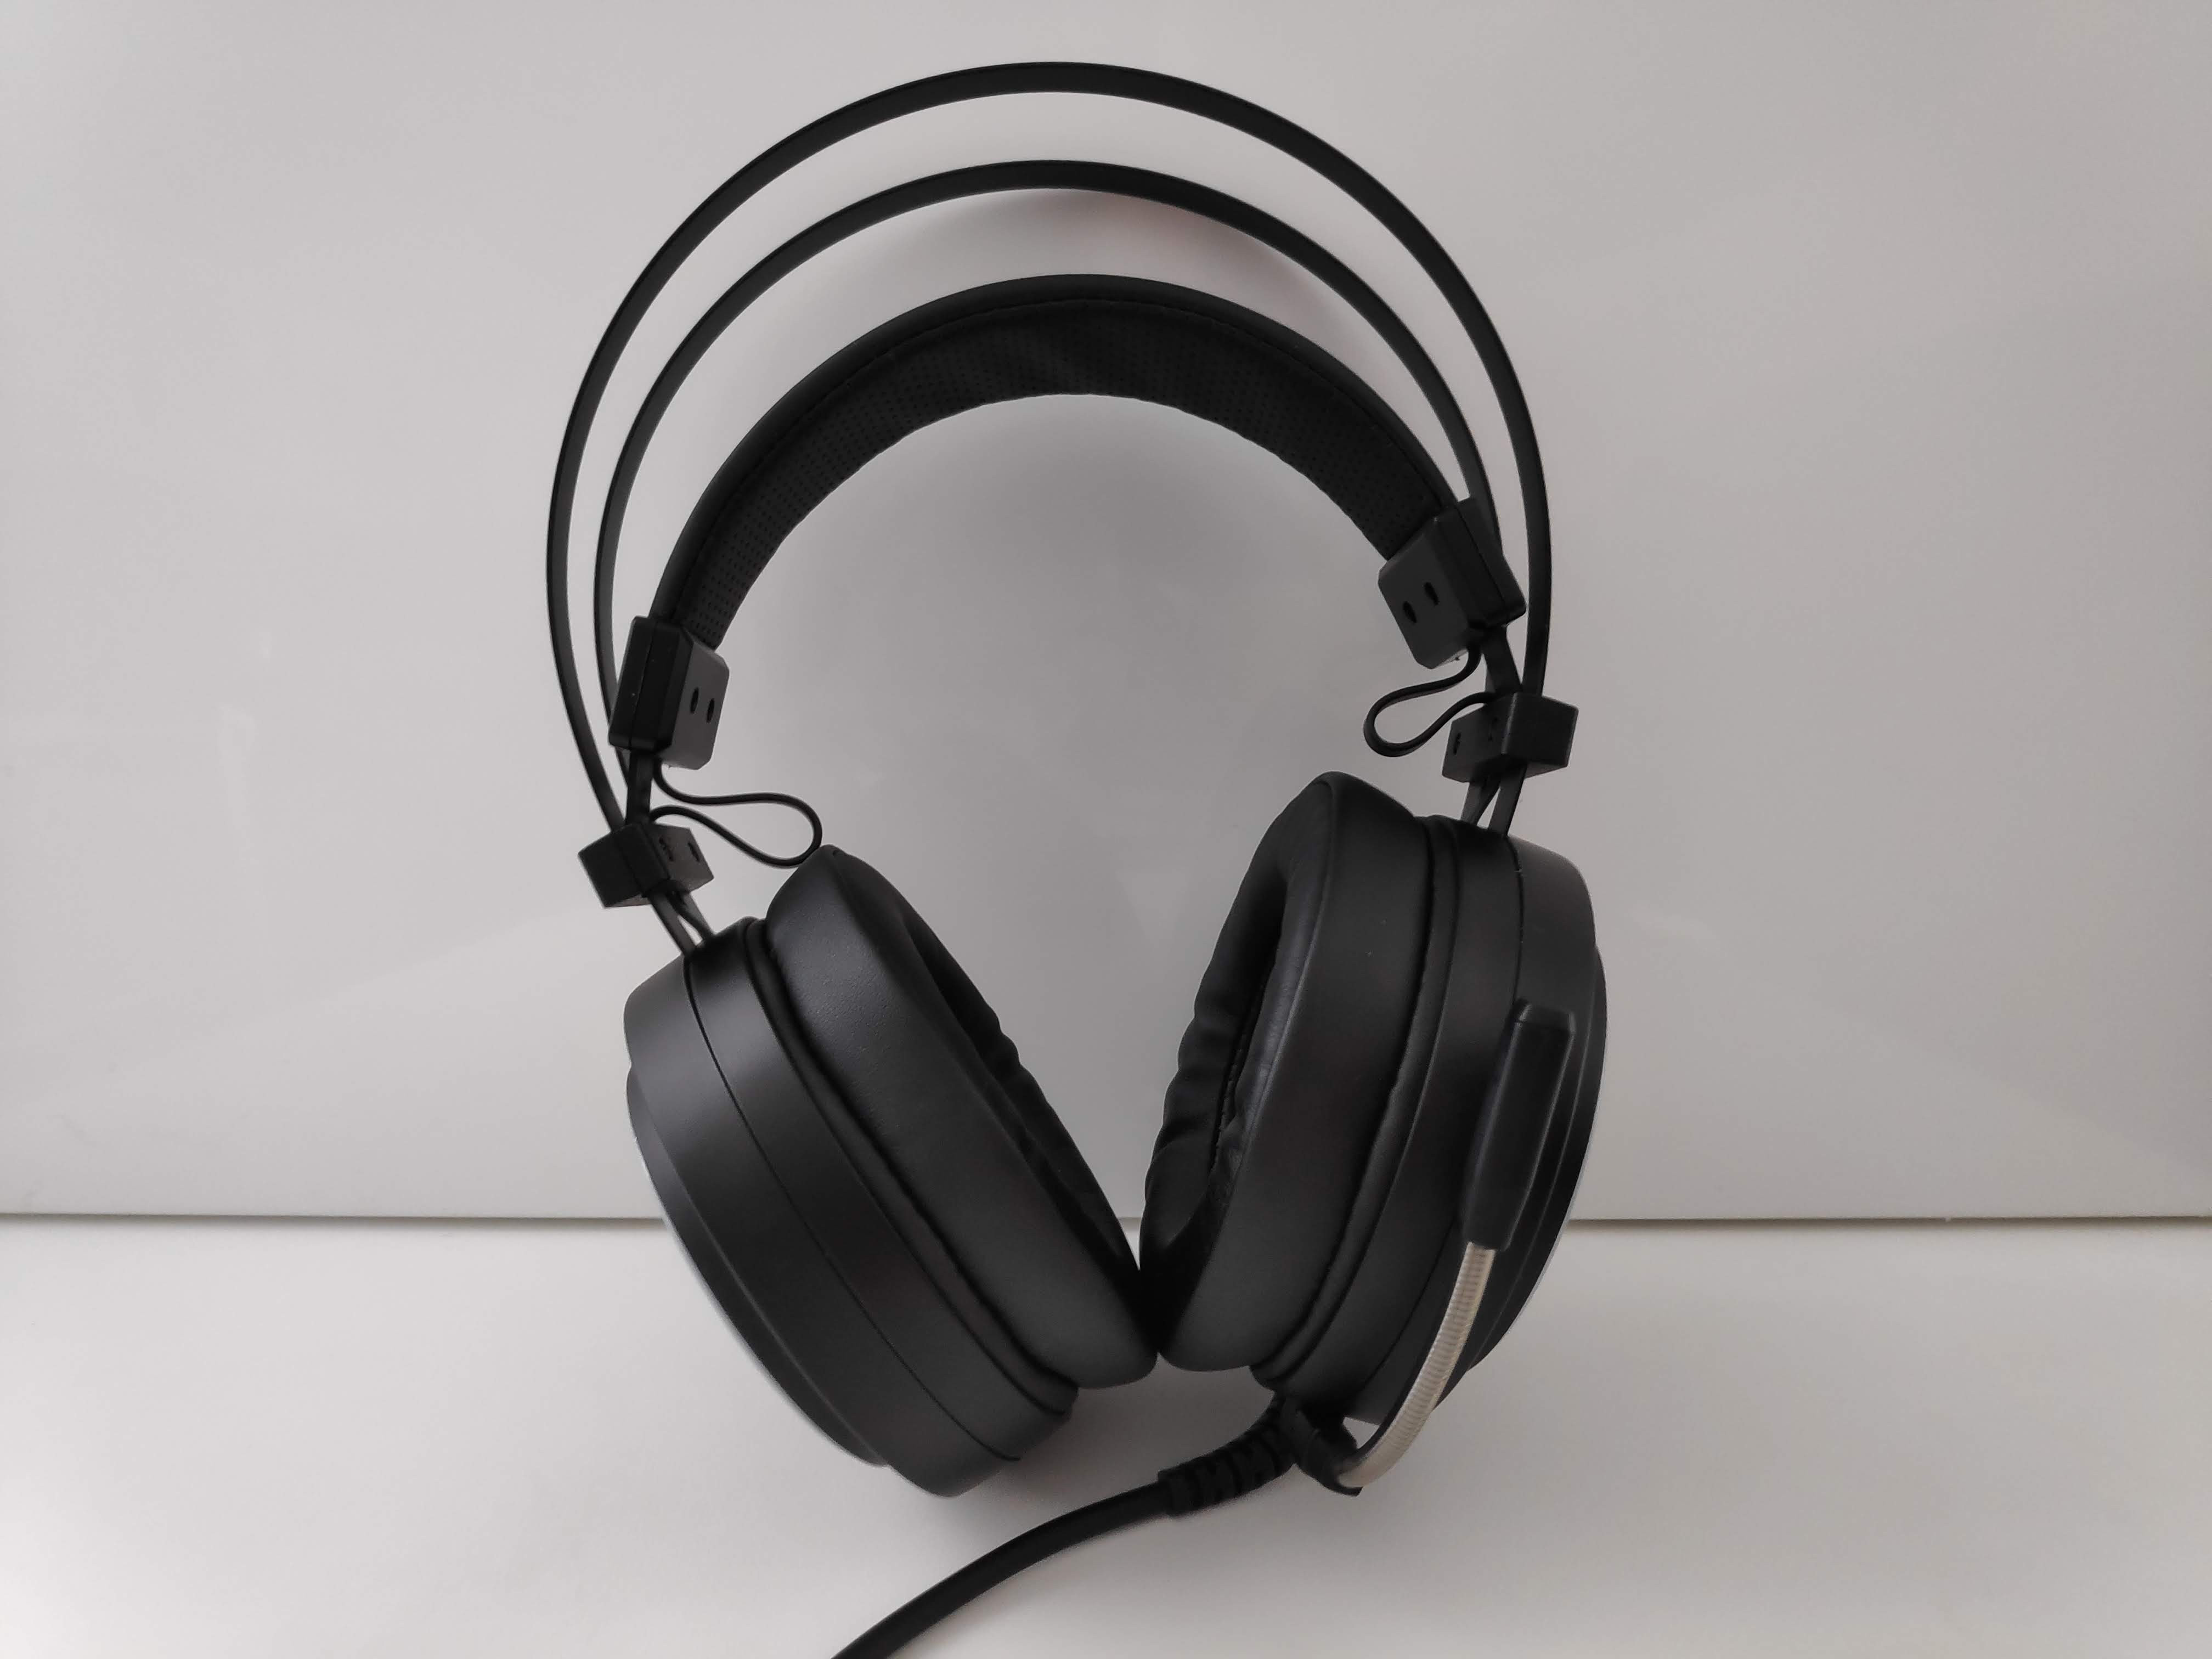 Aukey Test 1 S5Notre Gh Du Casque Low 7 Cost Gaming n8P0kwO